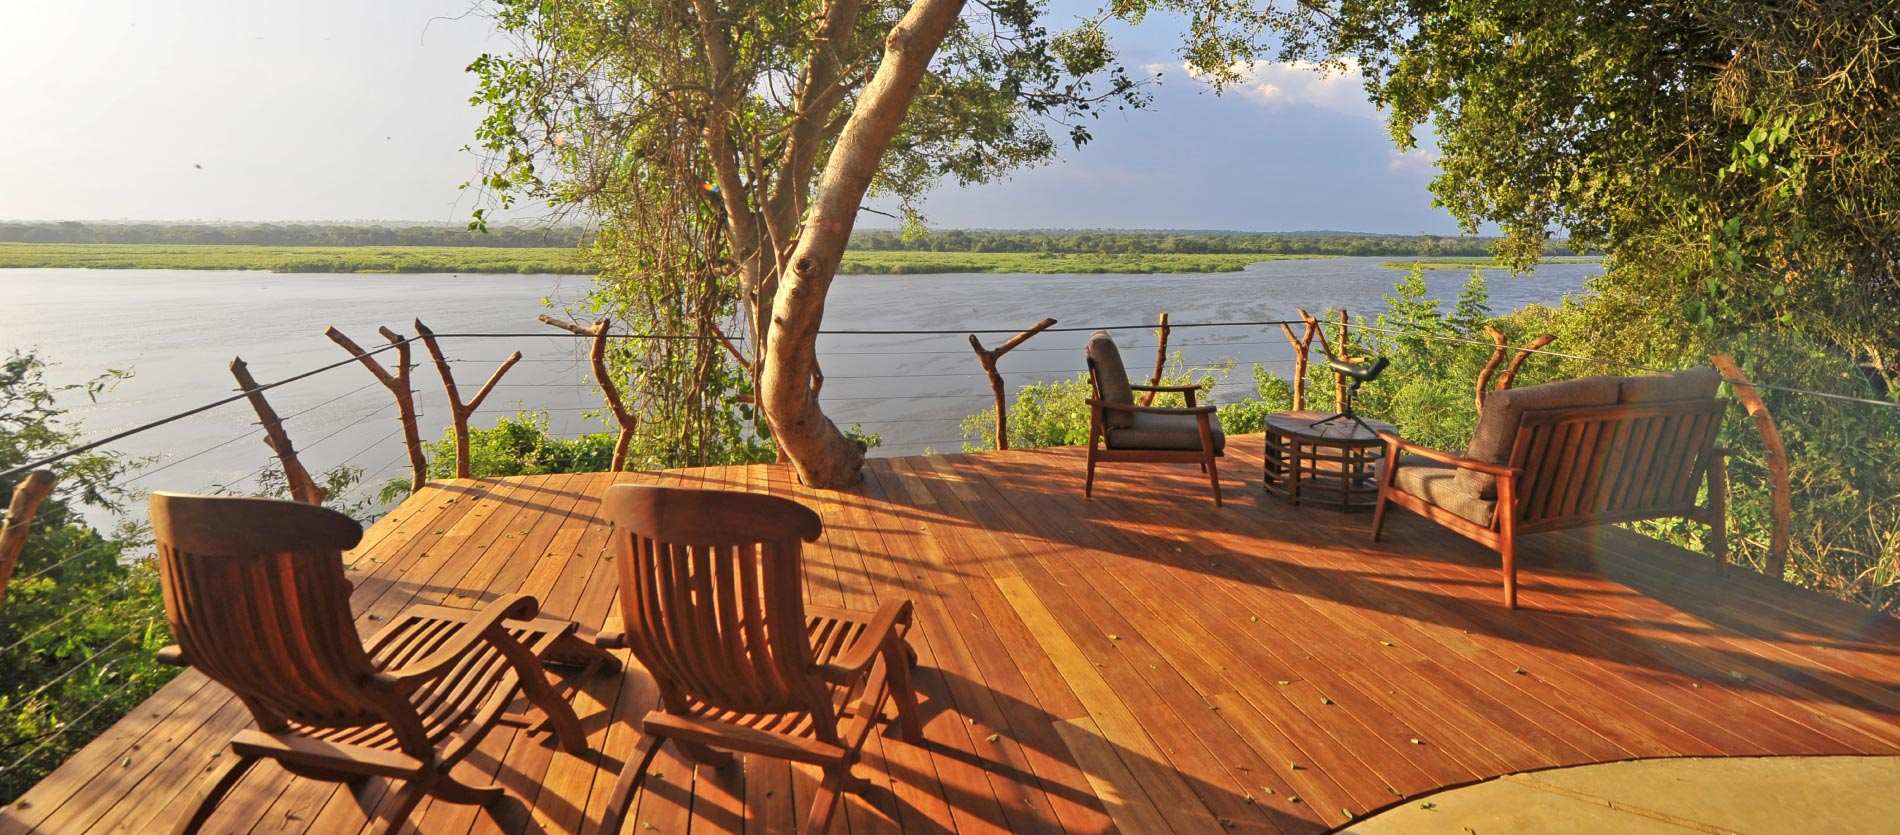 Nile Safari Lodge- Murchison Falls National